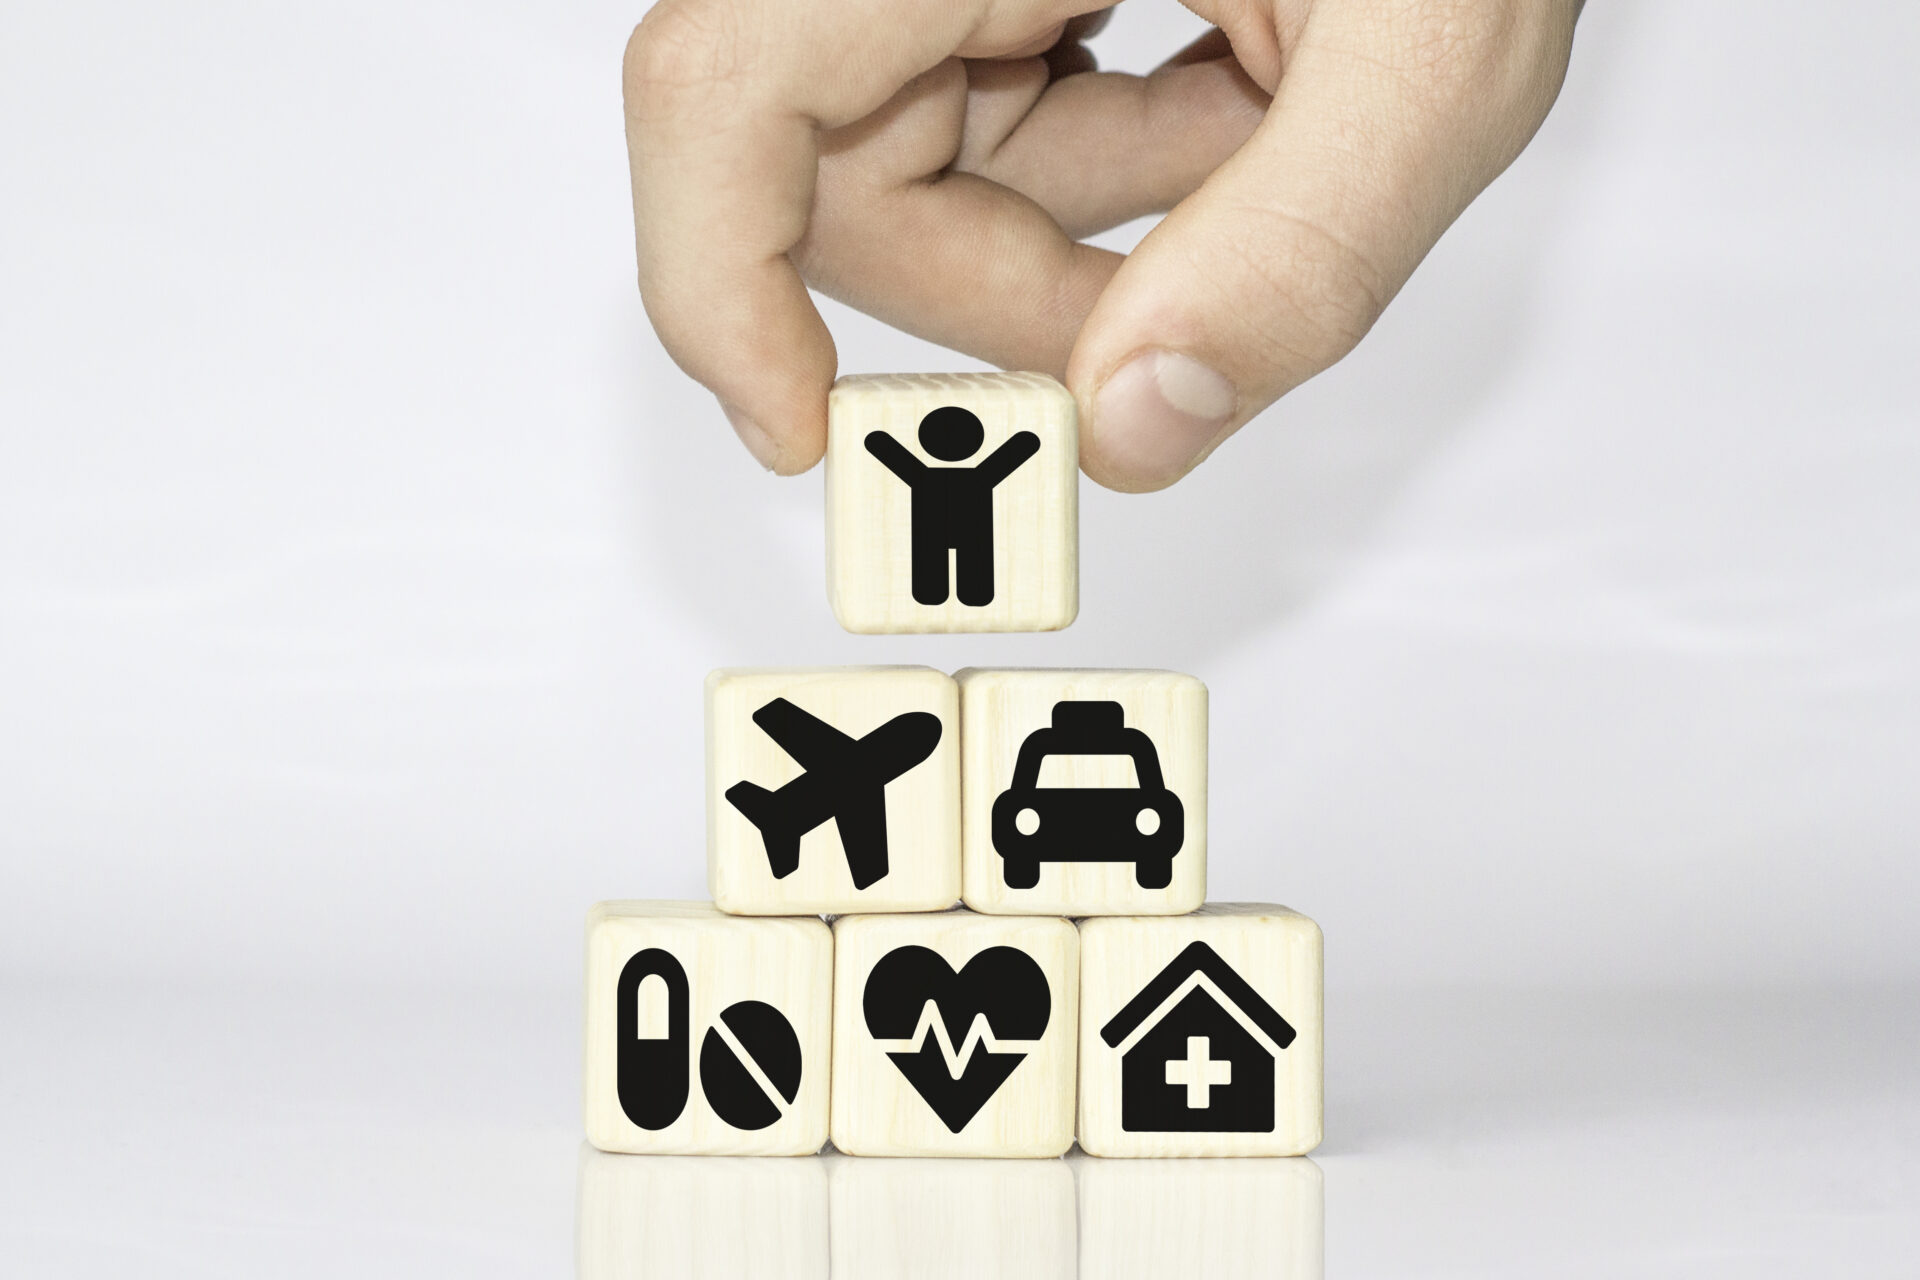 https://www.giovannimuratore.it/wp-content/uploads/2021/02/hand-arranging-wood-block-stacking-with-icon-healthcare-medical-insurance-for-your-health-concept-1920x1280.jpg